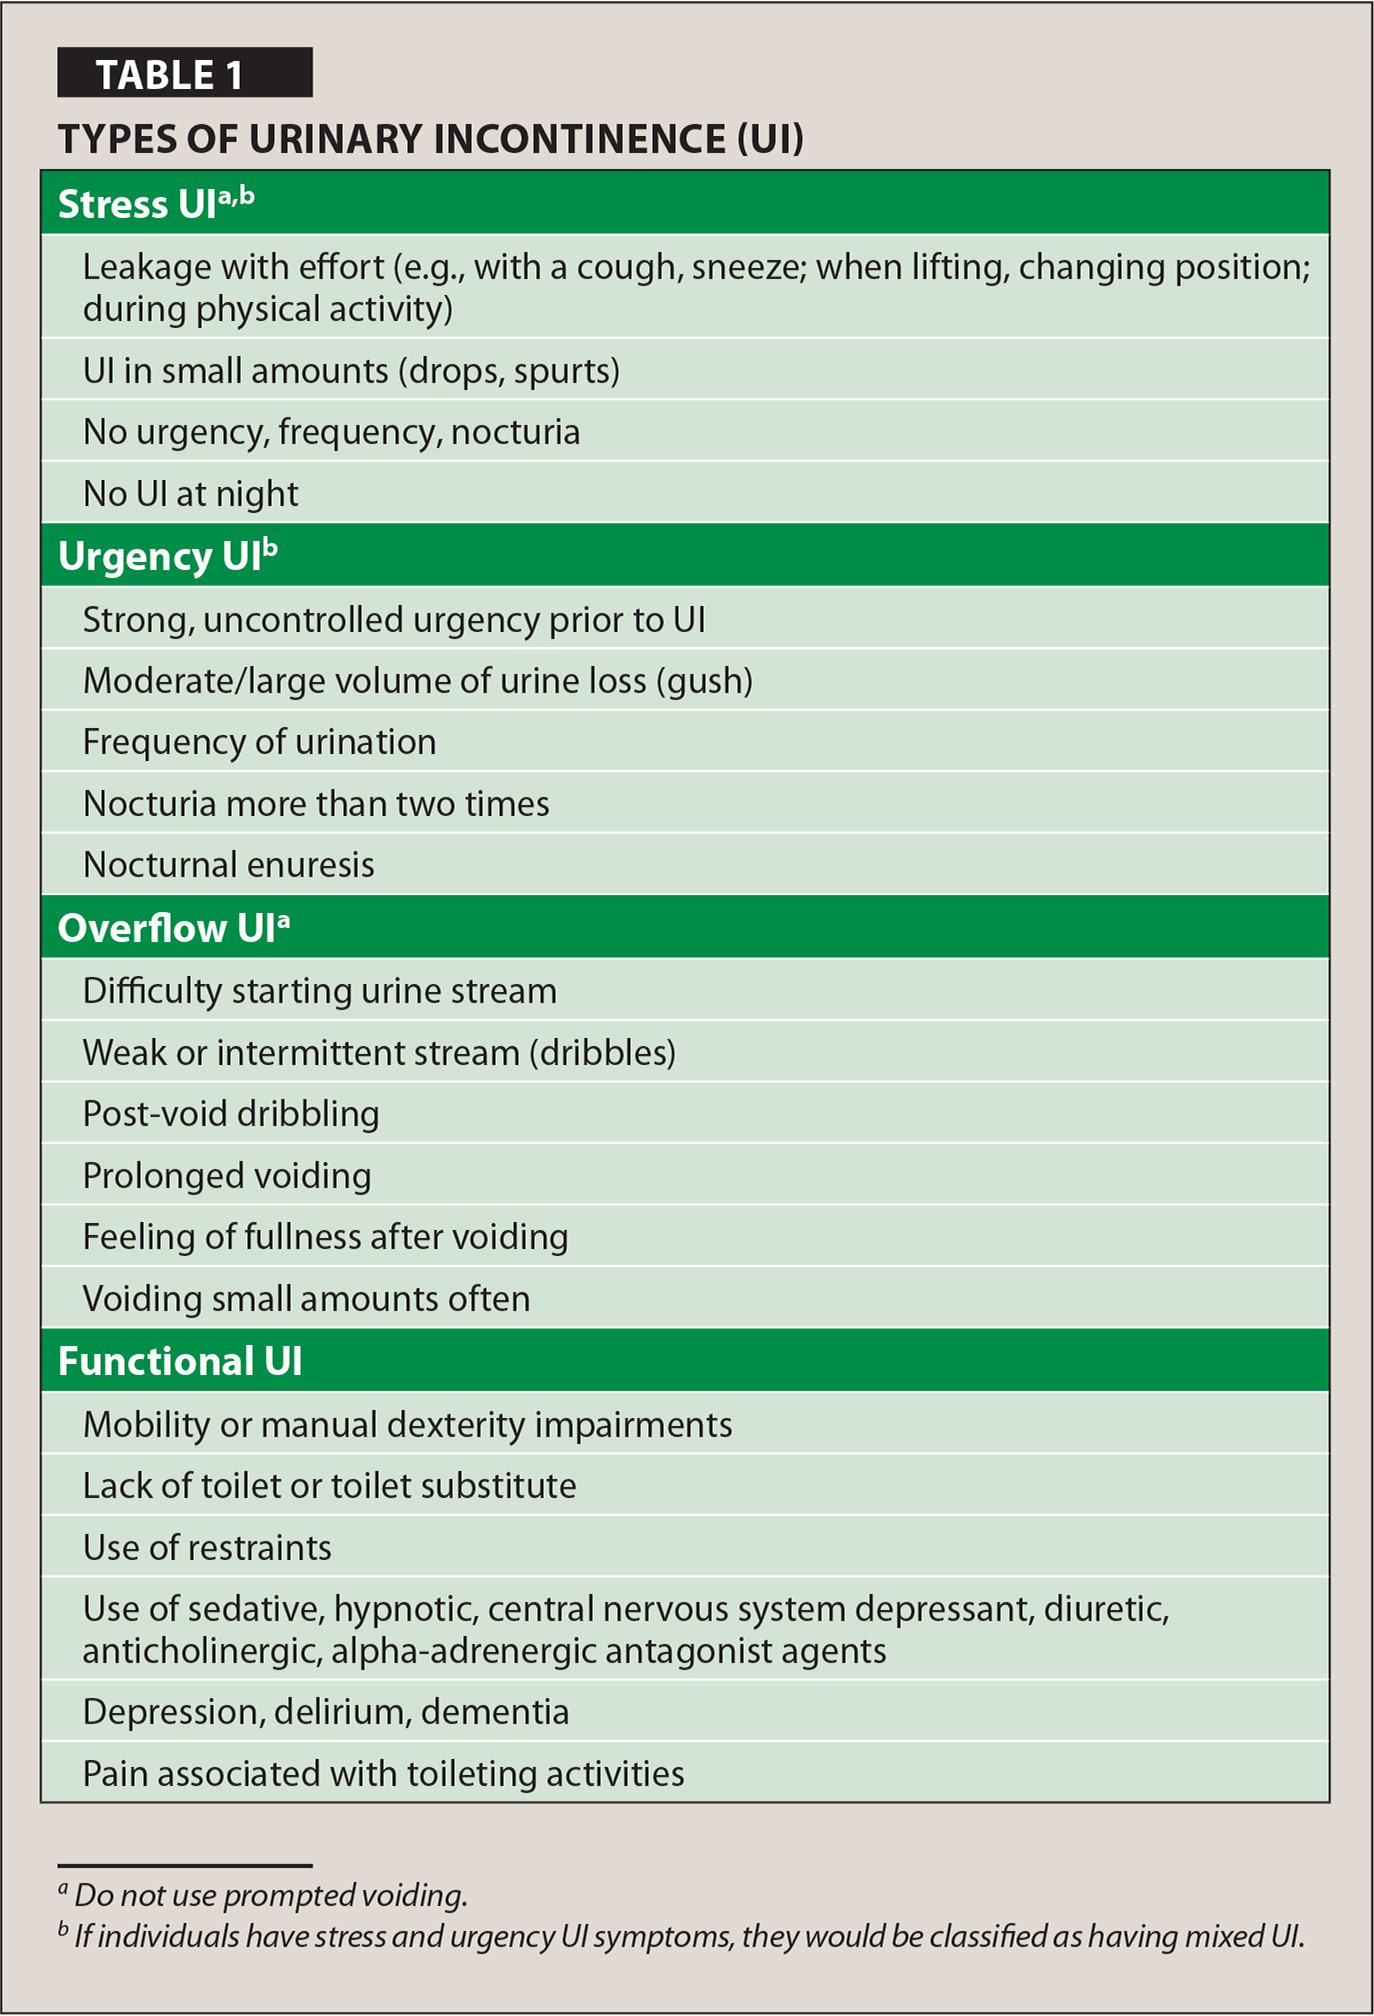 Types of Urinary Incontinence (UI)